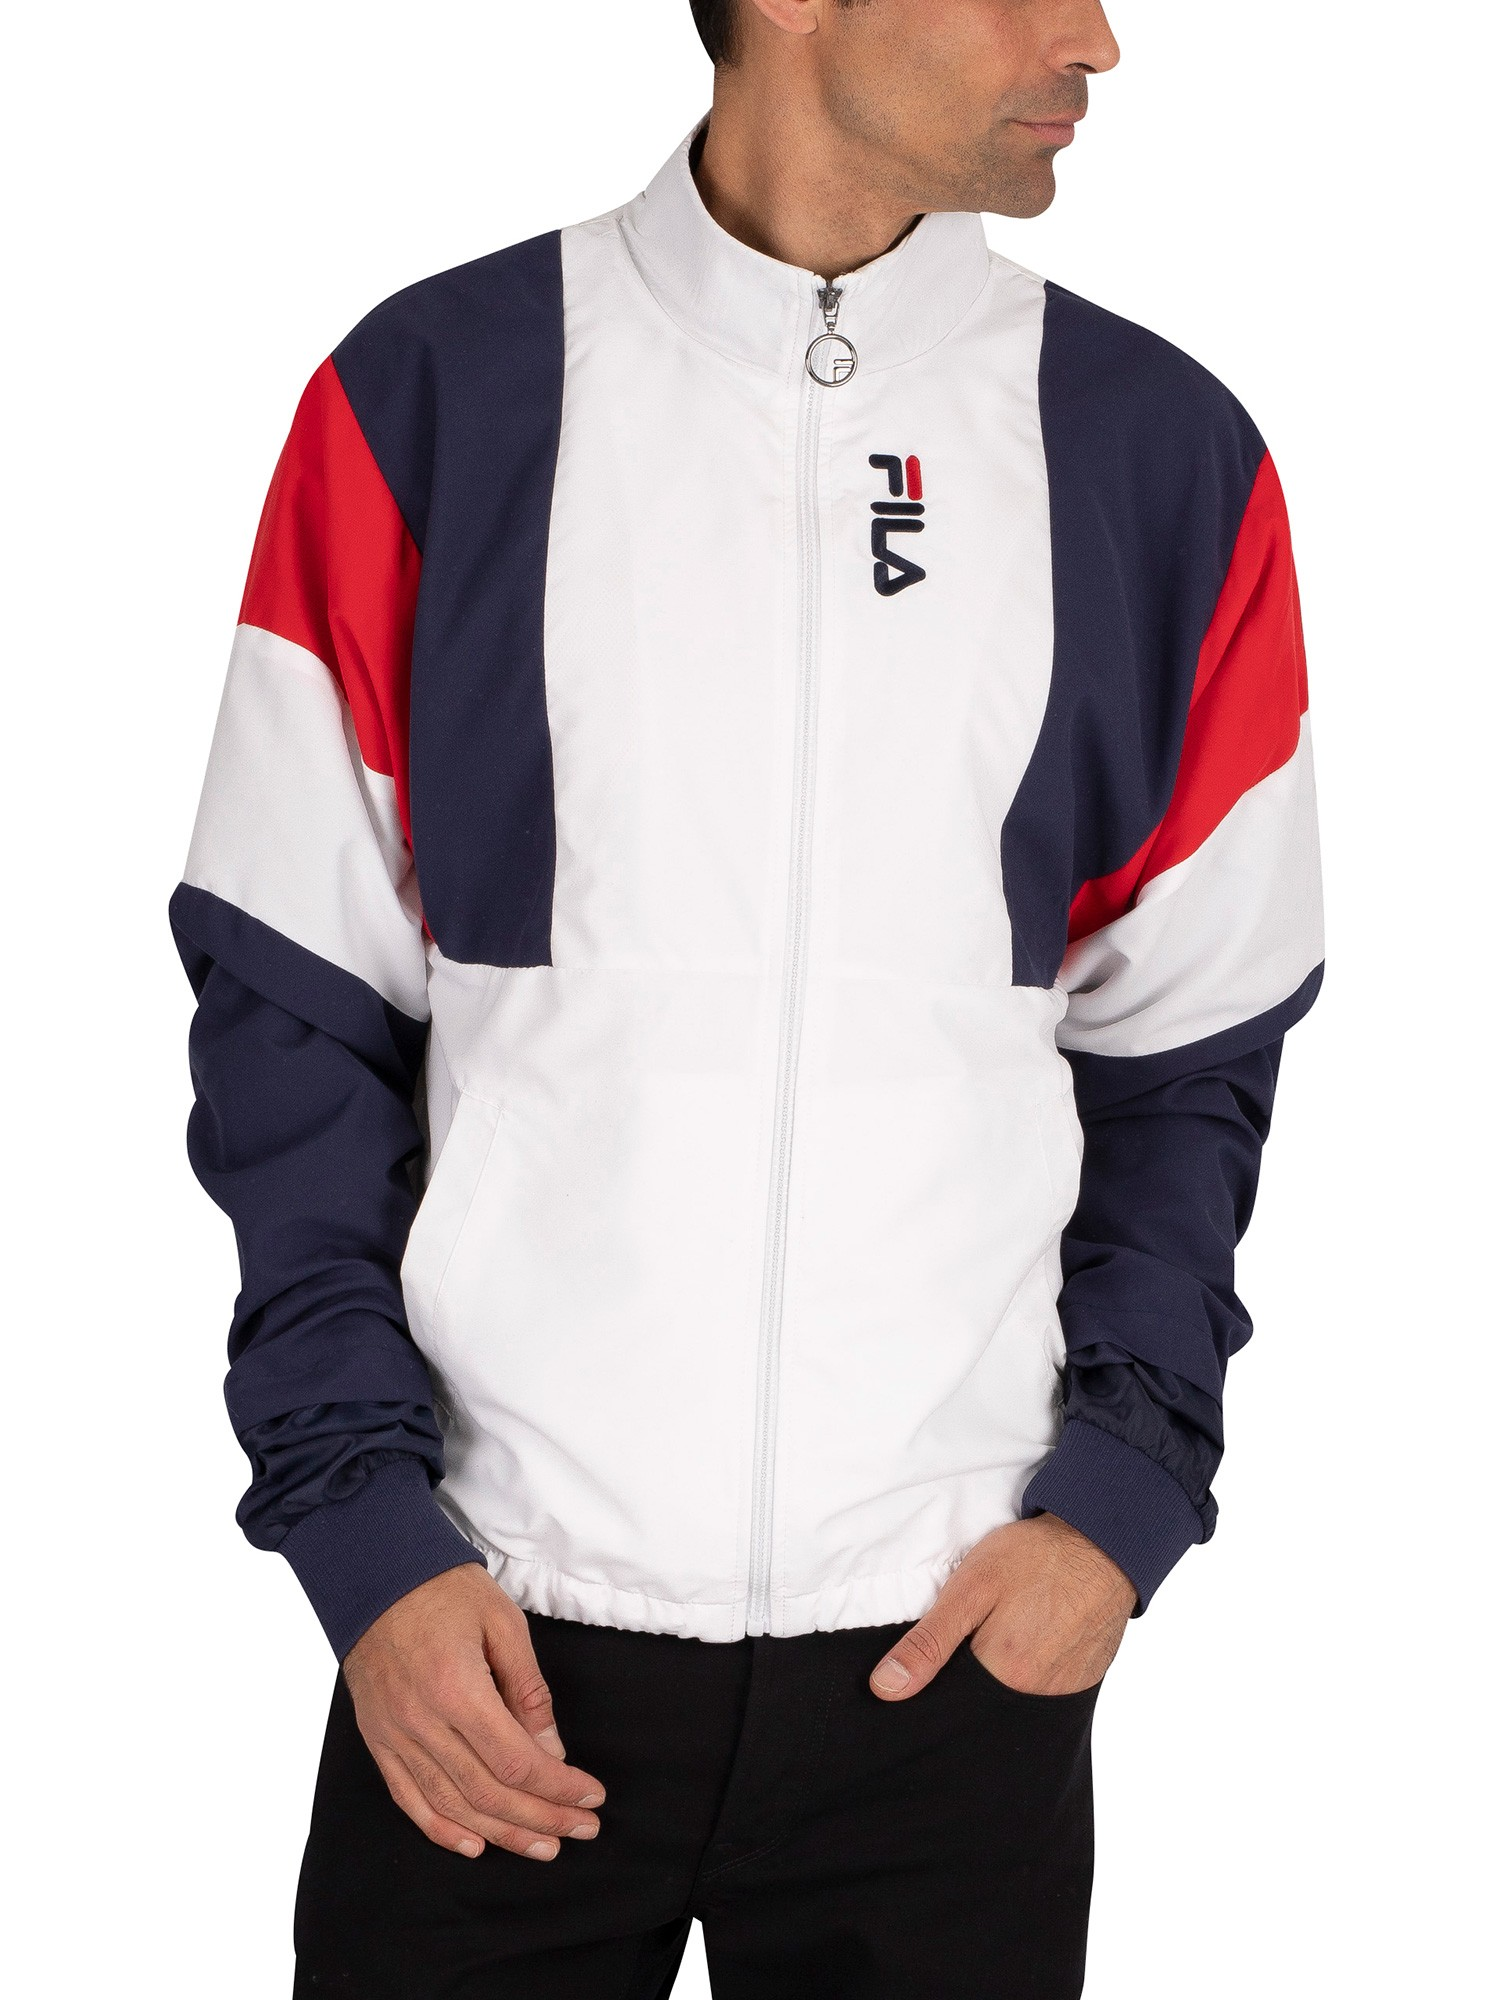 Fila Hambly Cut And Sew Stripe Track Jacket - White/Peacoat/Red